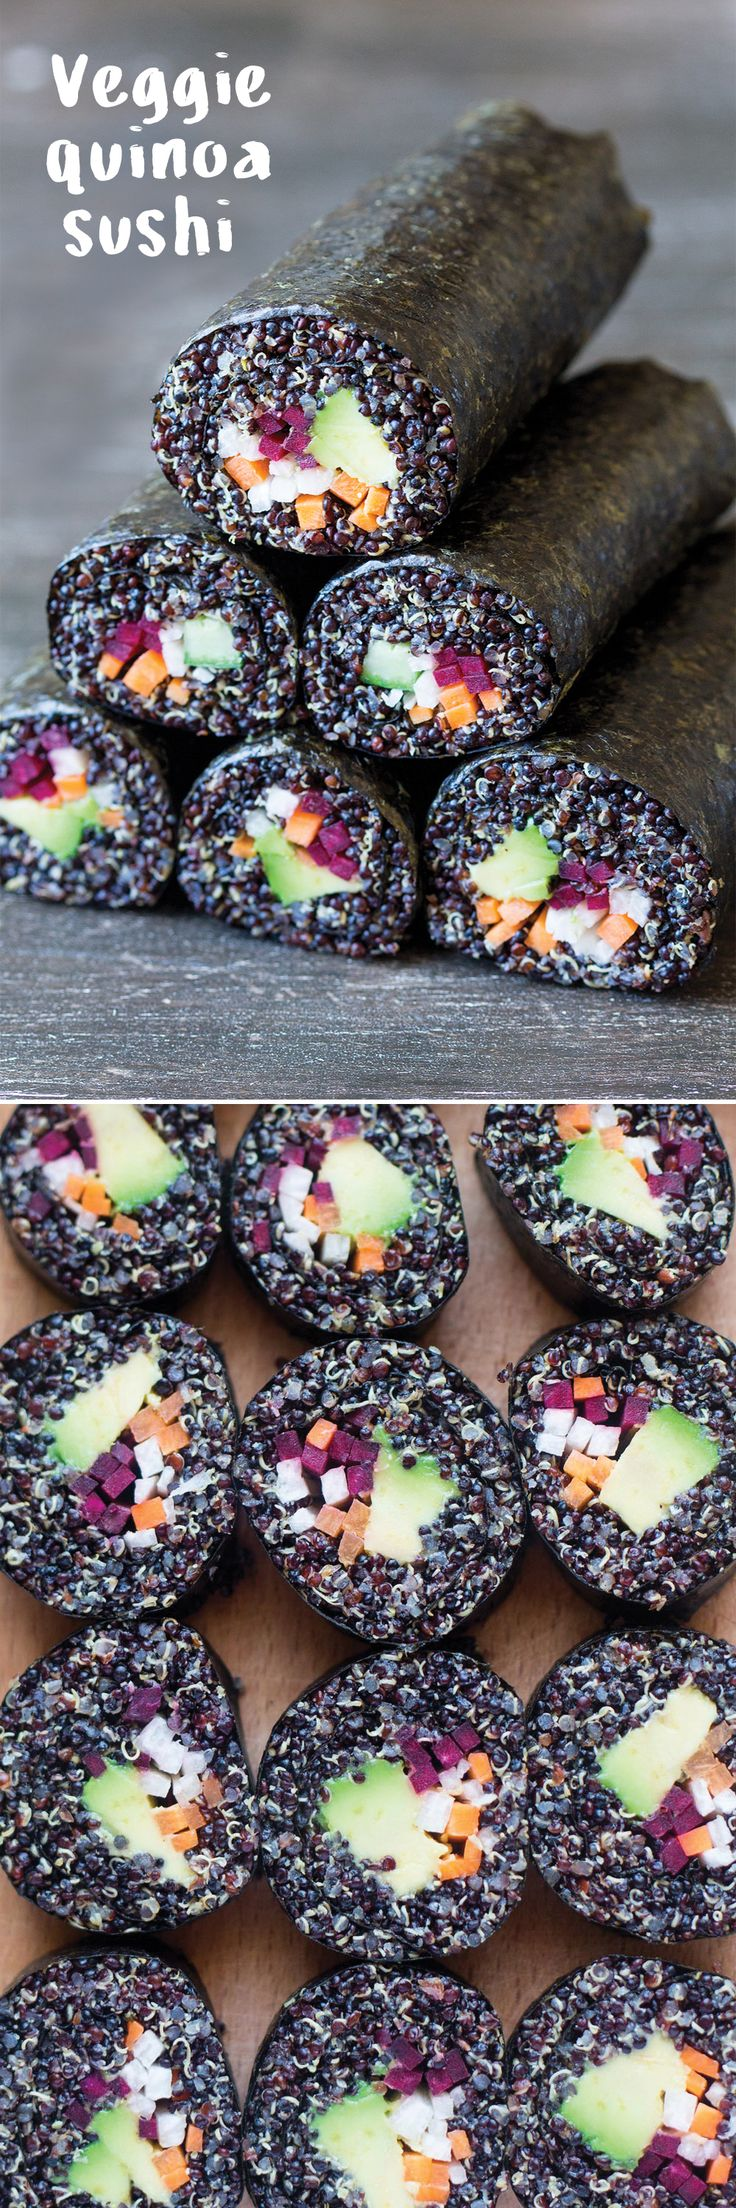 veggie quinoa sushi makes a filling yet light meal. it's perfect for a summer lunch or for a picnic!